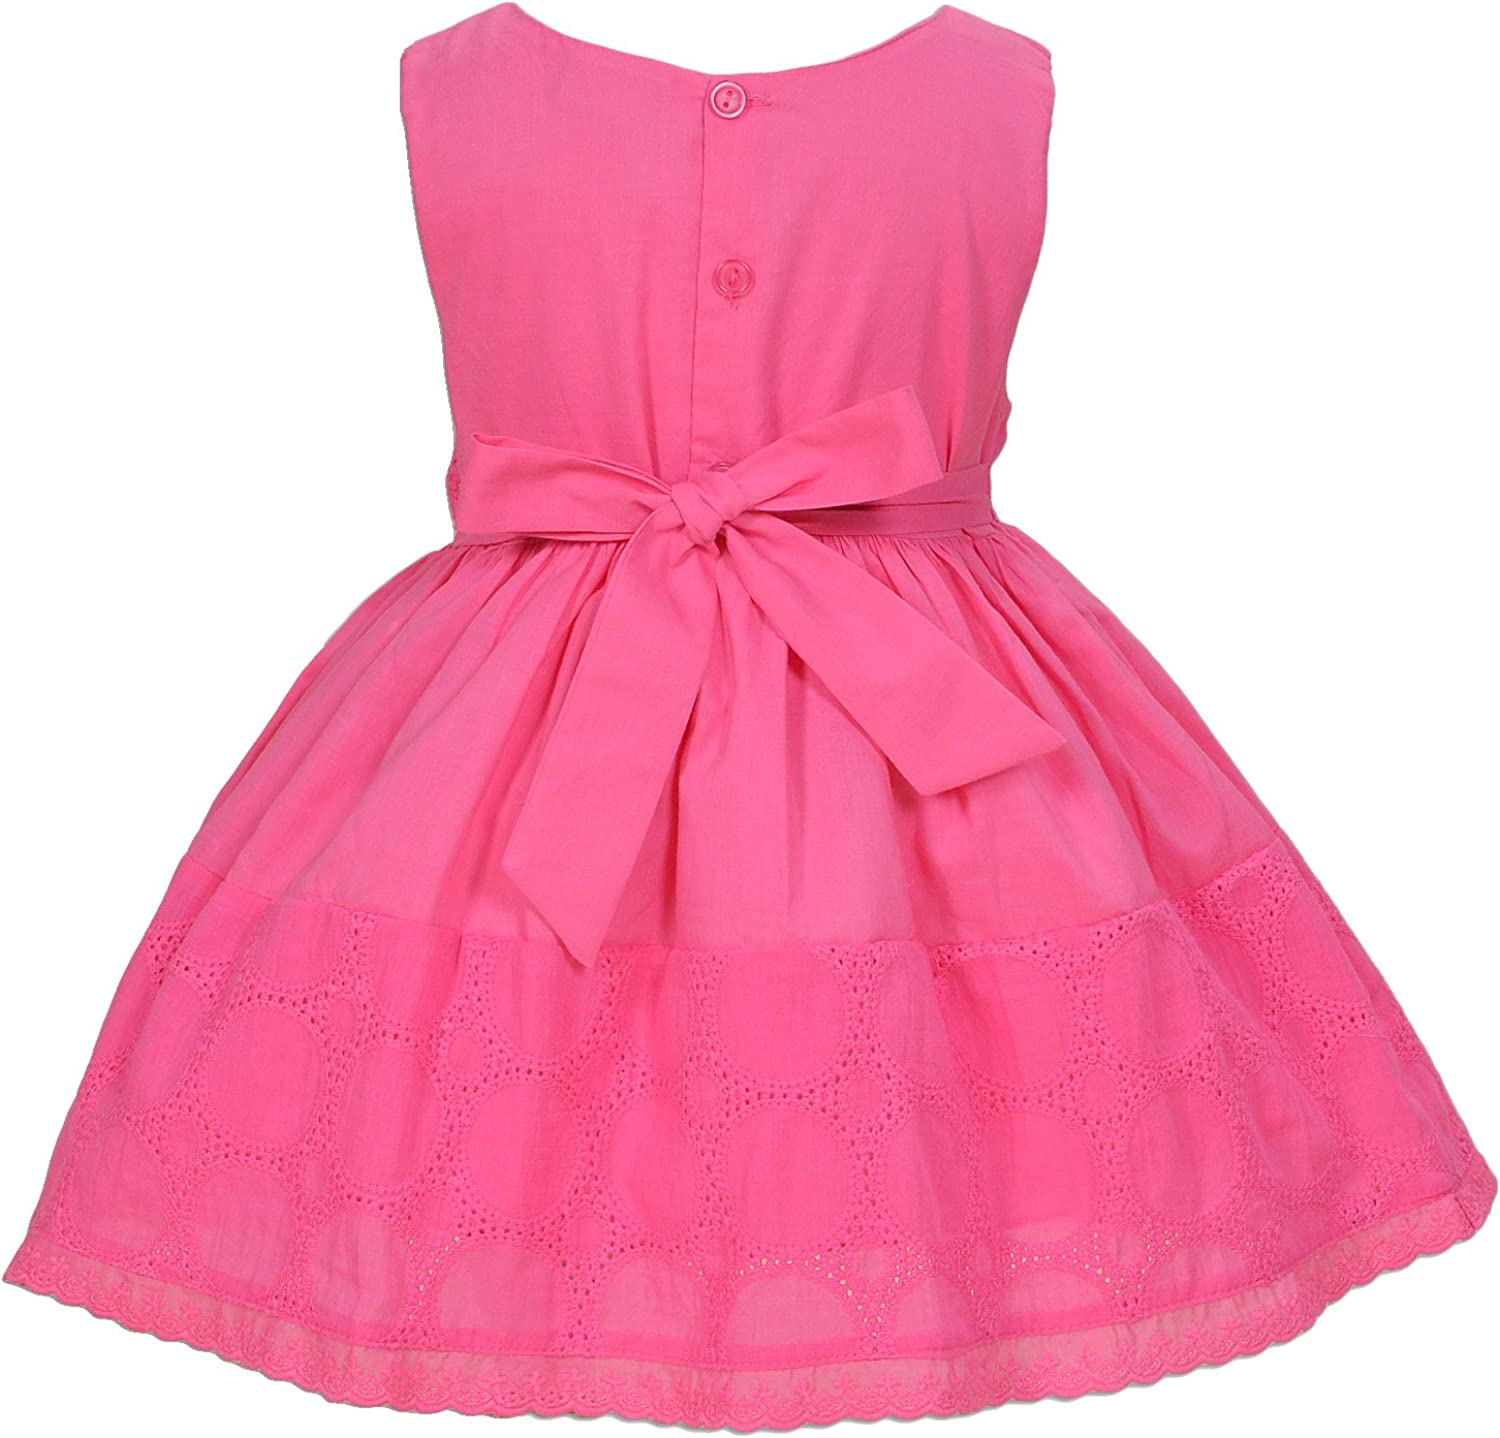 Cinda Clothing Baby Girls Cotton Party Dress